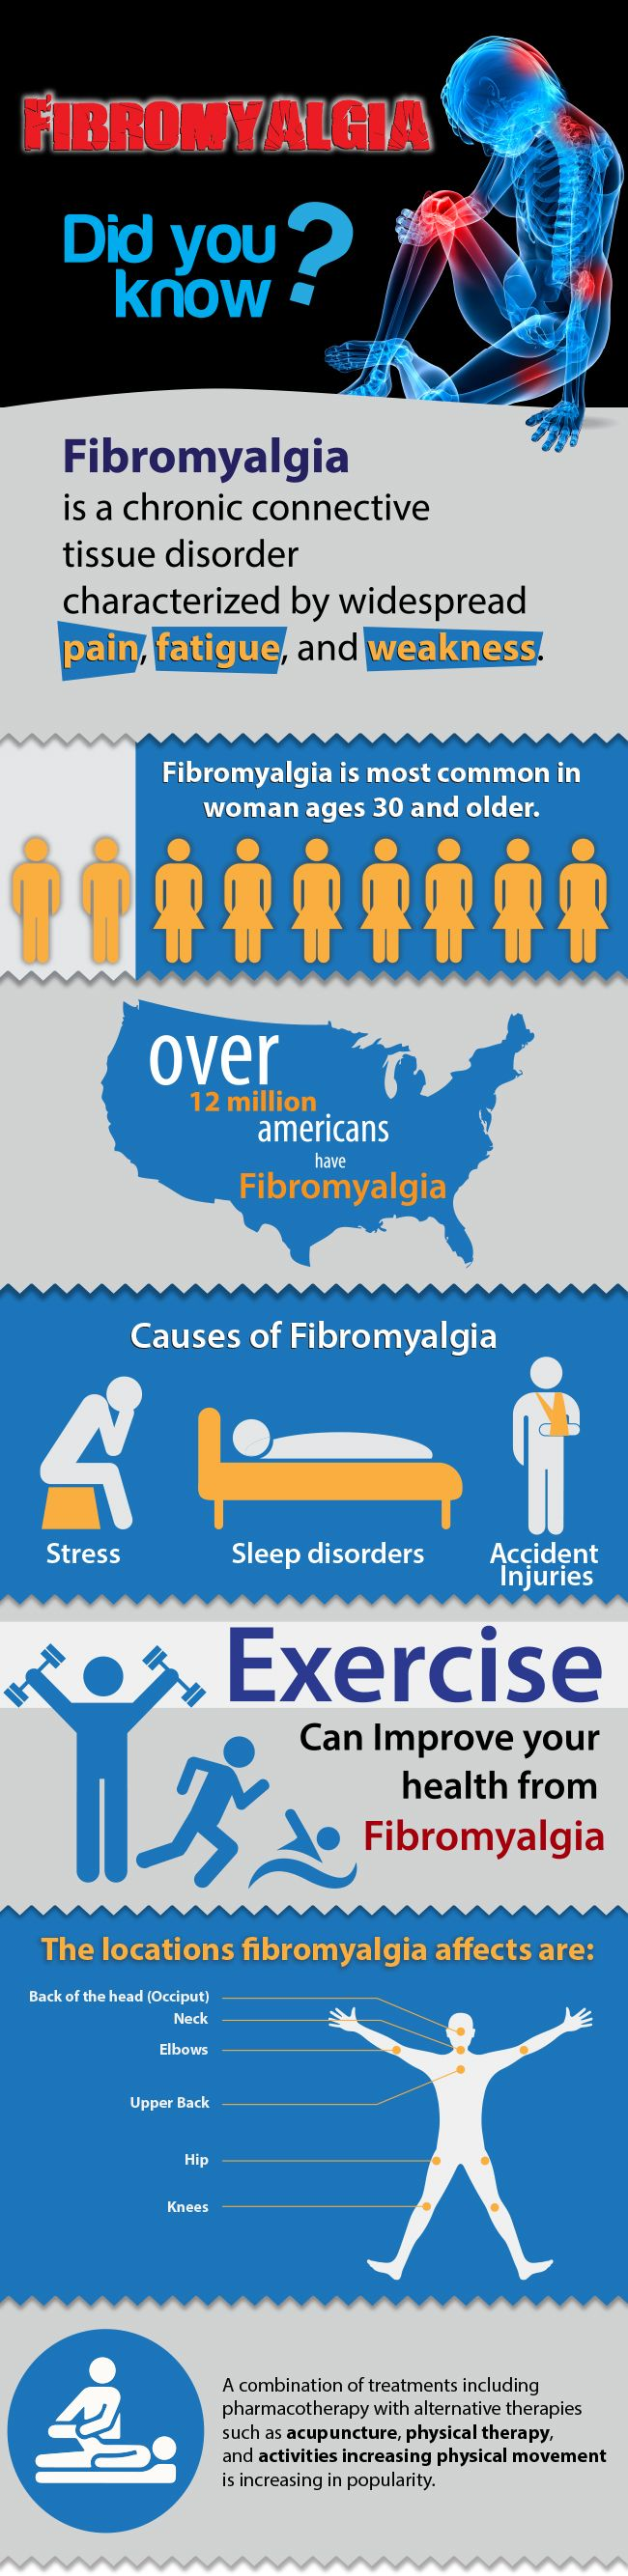 #Fibromyalgia is one of the most common #pain conditions affecting about 2% of the U.S. population. According to the National Fibromyalgia Association, more than 10 million people in the U.S. suffer from this disabling condition. Read more at http://nevadapain.com/pain-conditions/common/fibromyalgia/